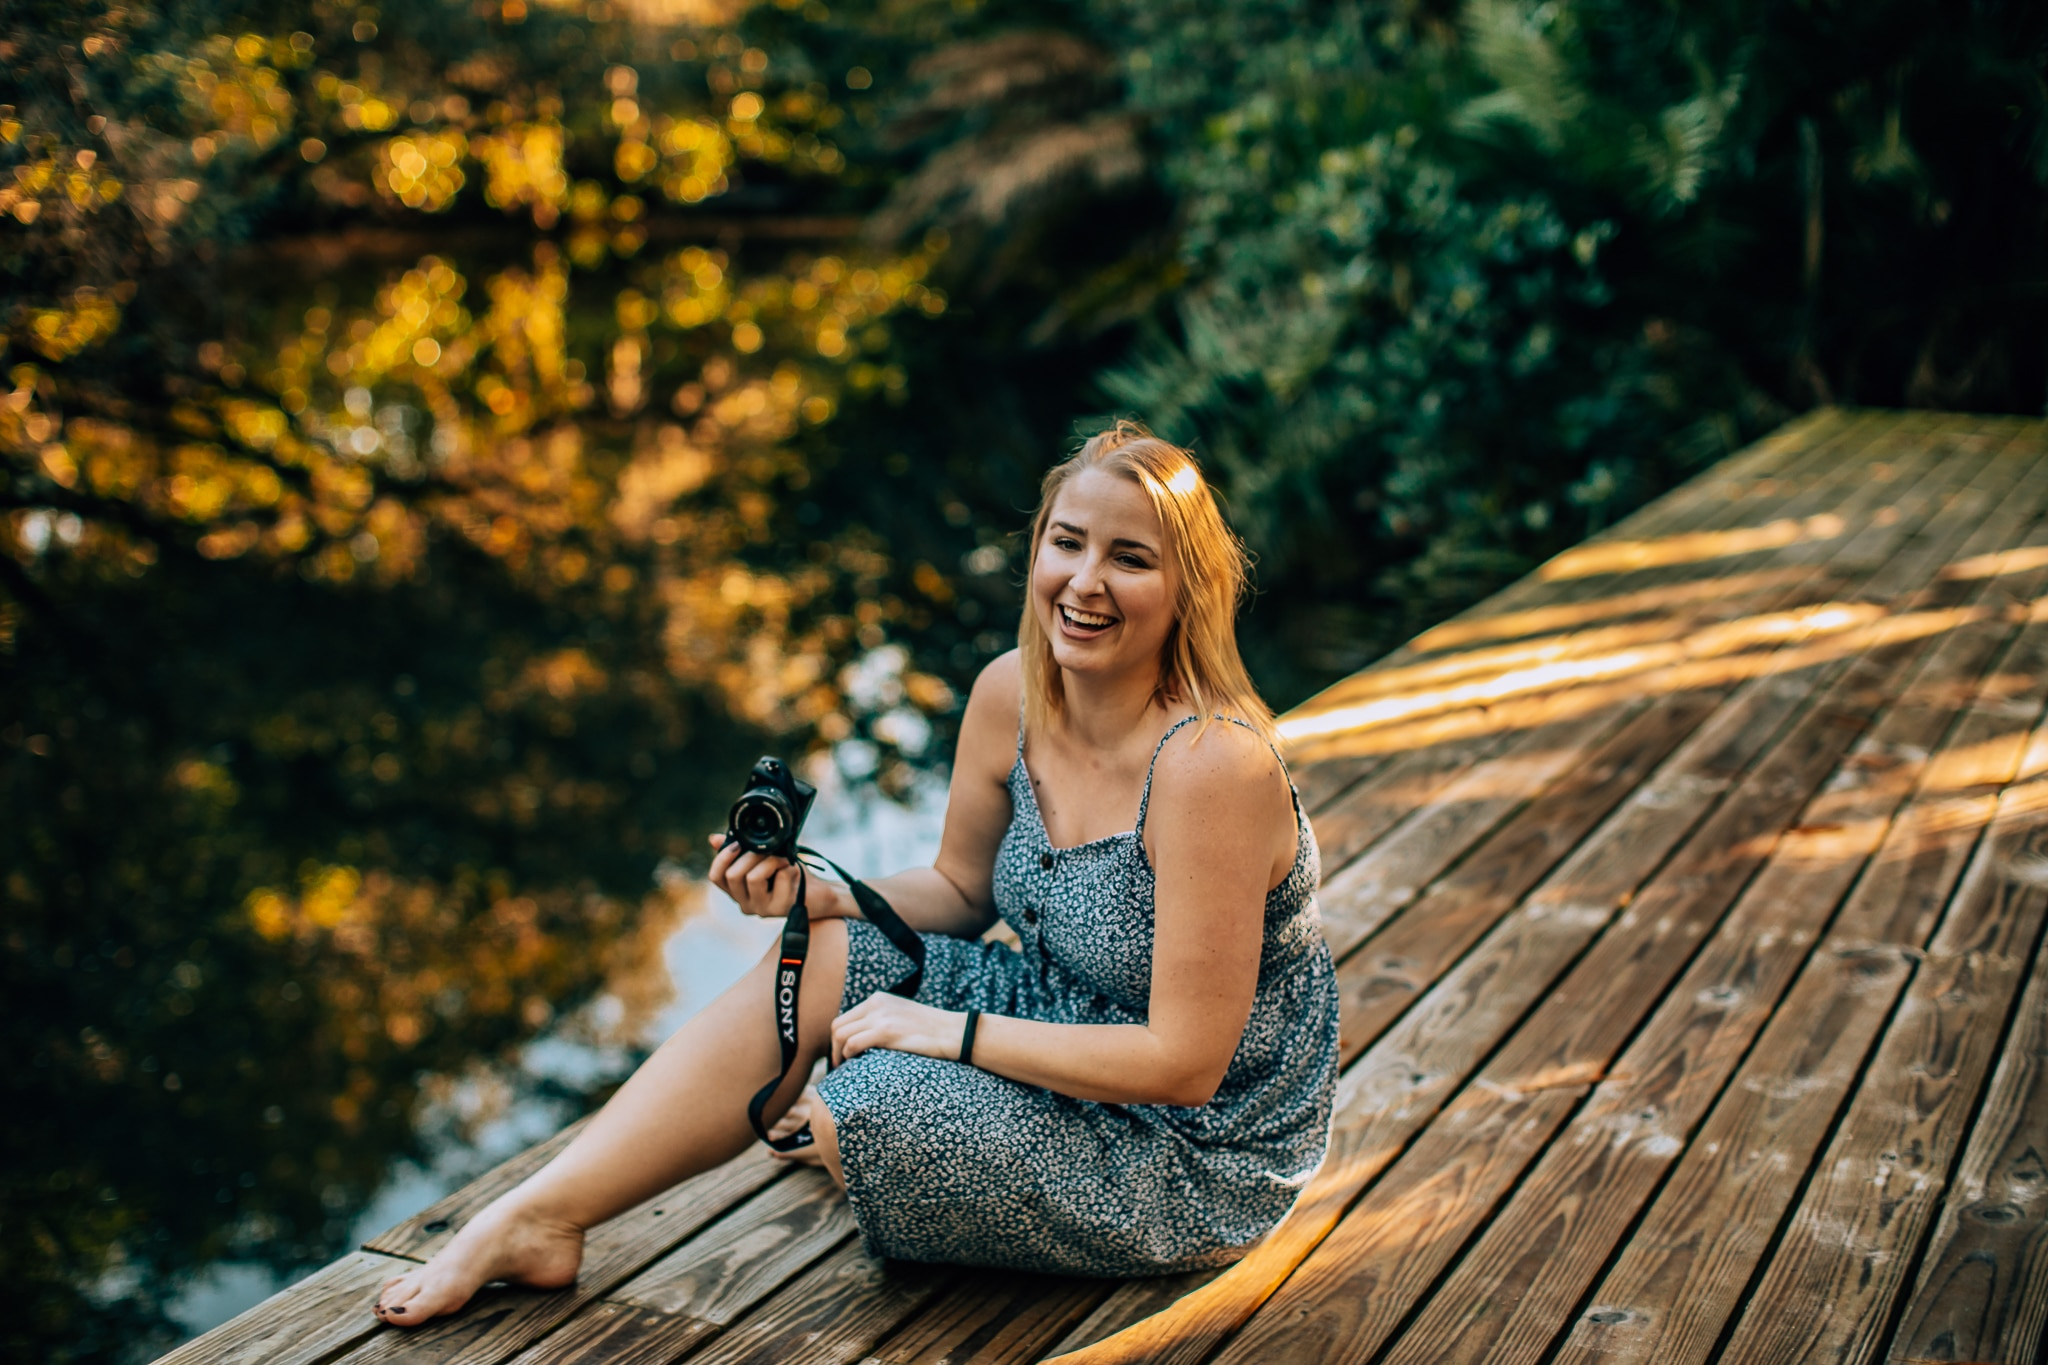 Woman sitting on a wooden platform over a swamp at Koreshan State Park in Naples, Florida. She is smiling and holding a camera.